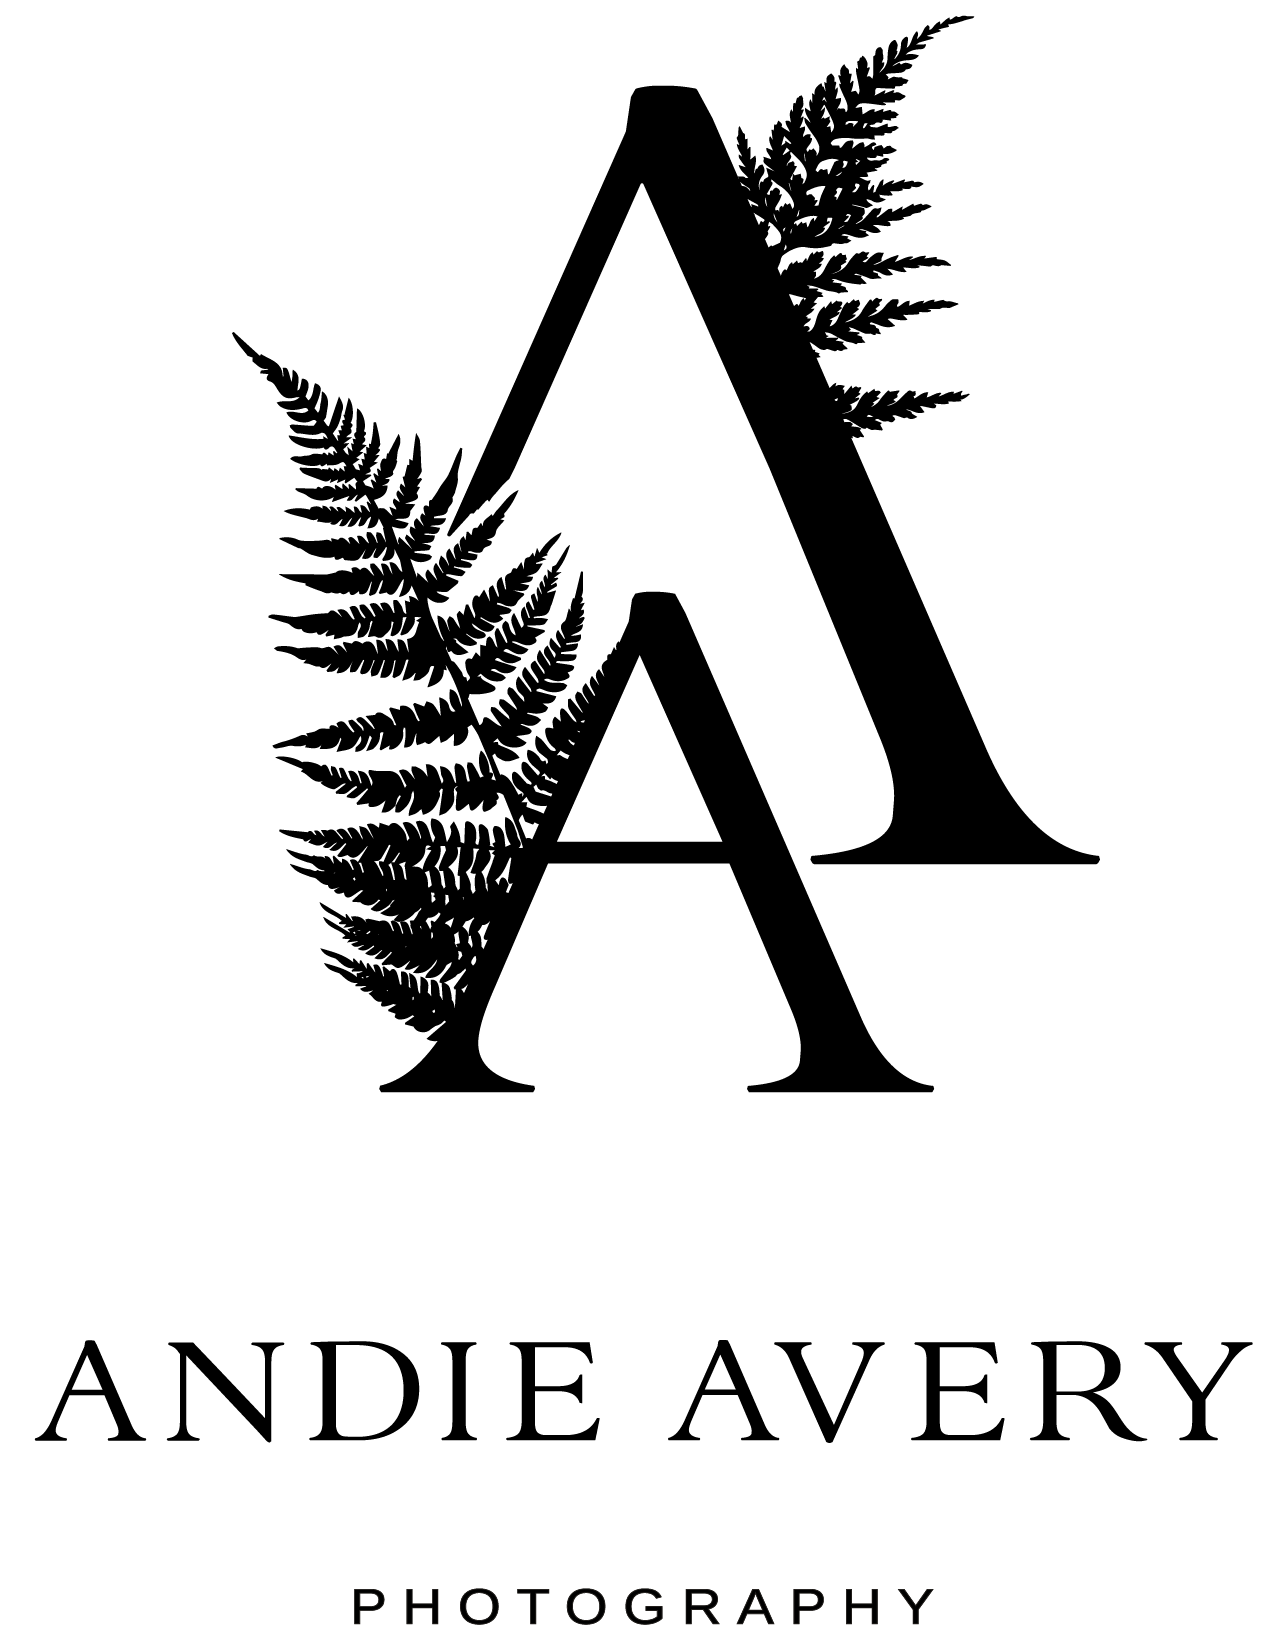 Andie Avery Photography